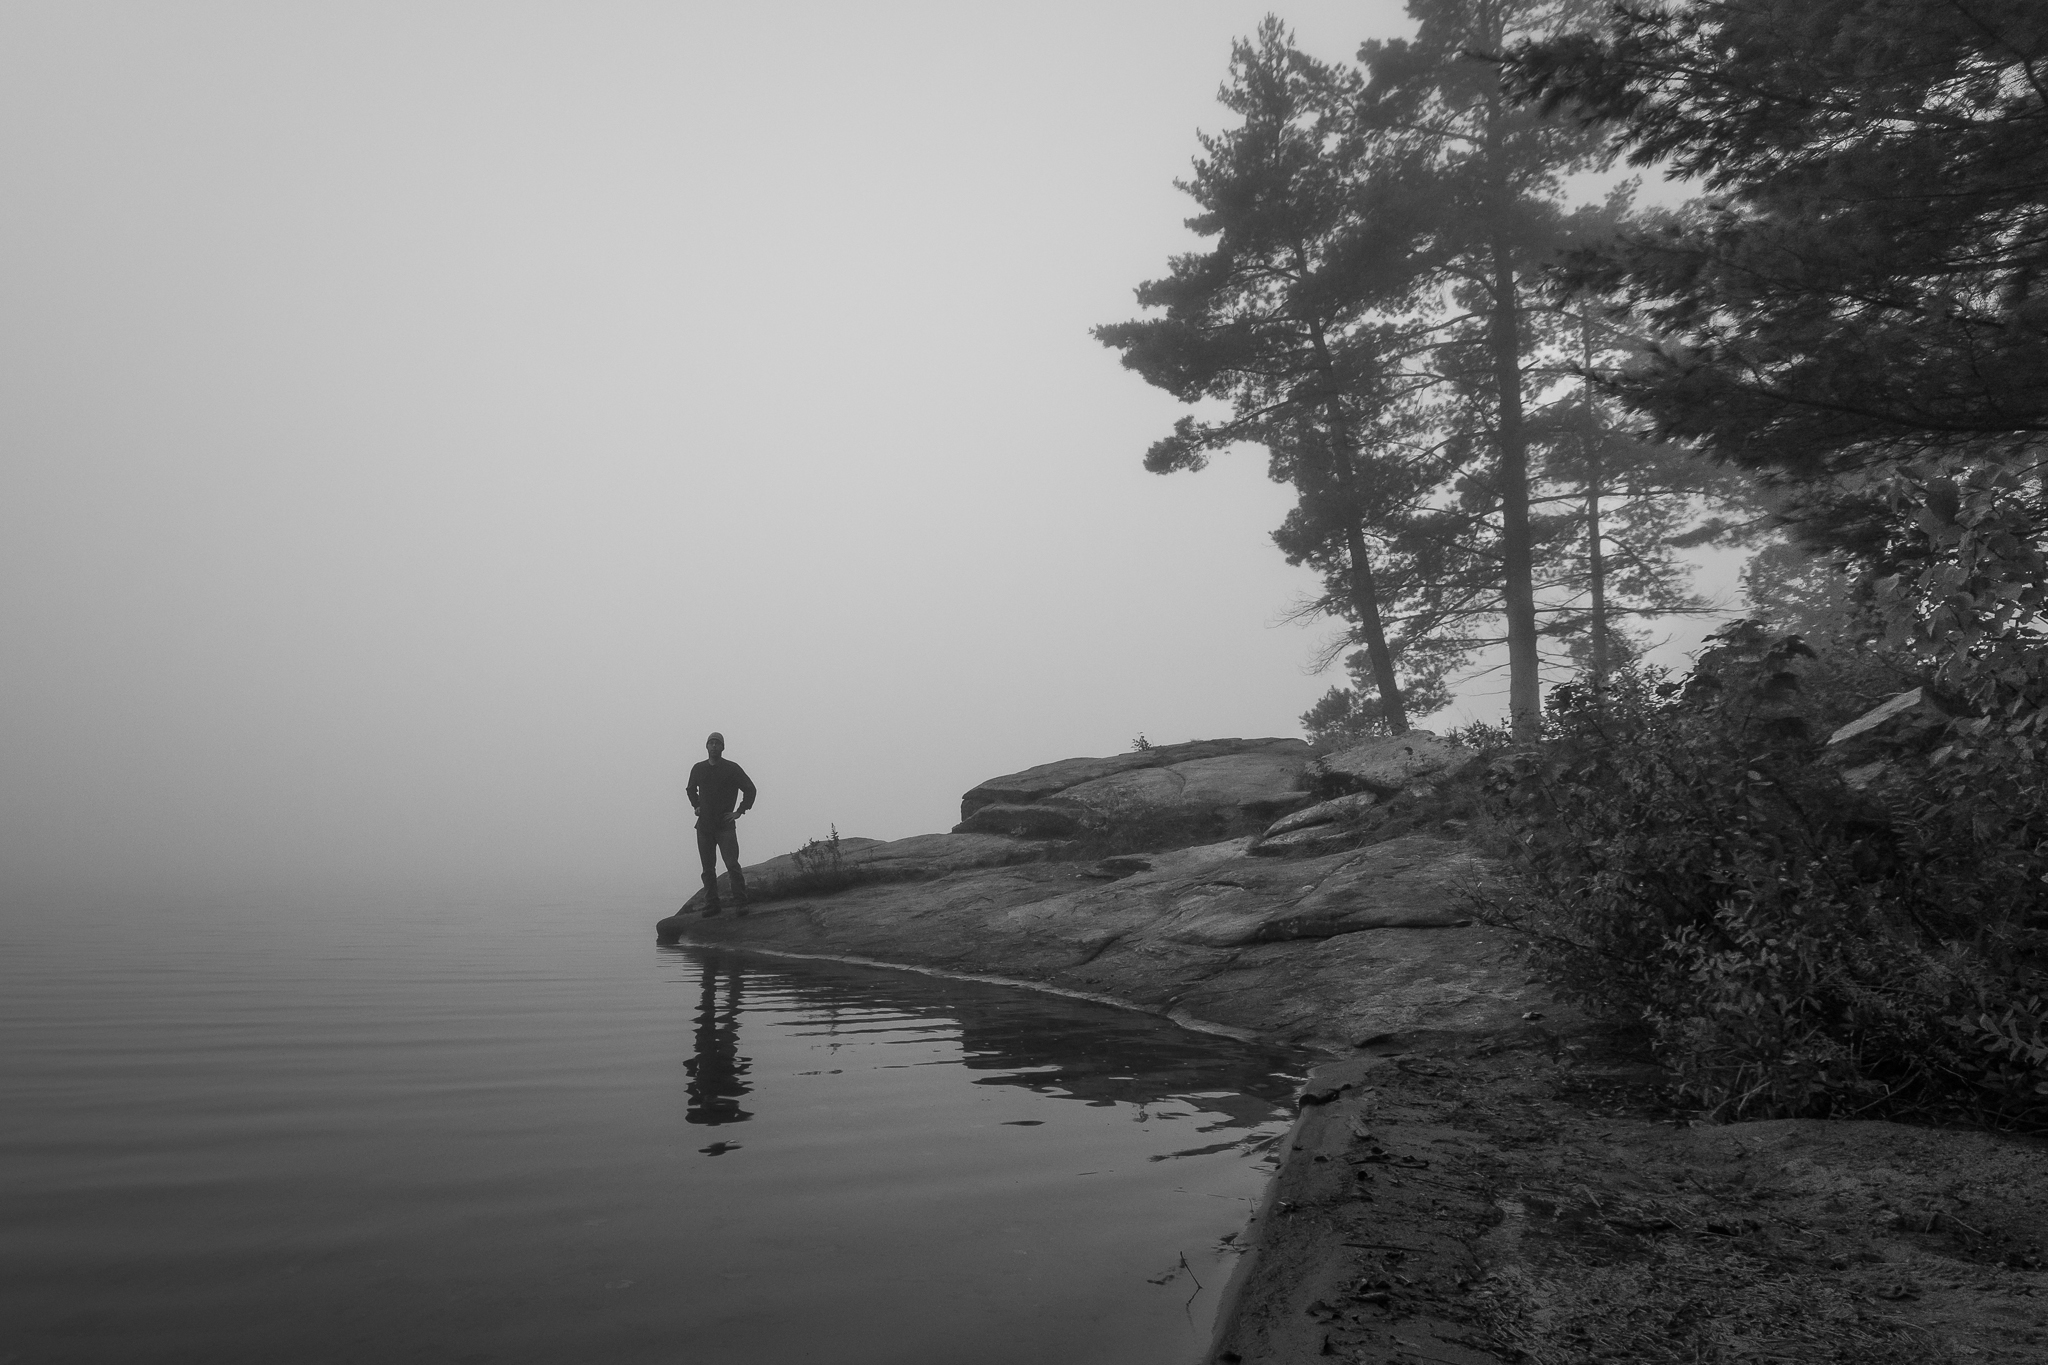 Early Morning on Rock Lake (1/50s, f/8, ISO400)